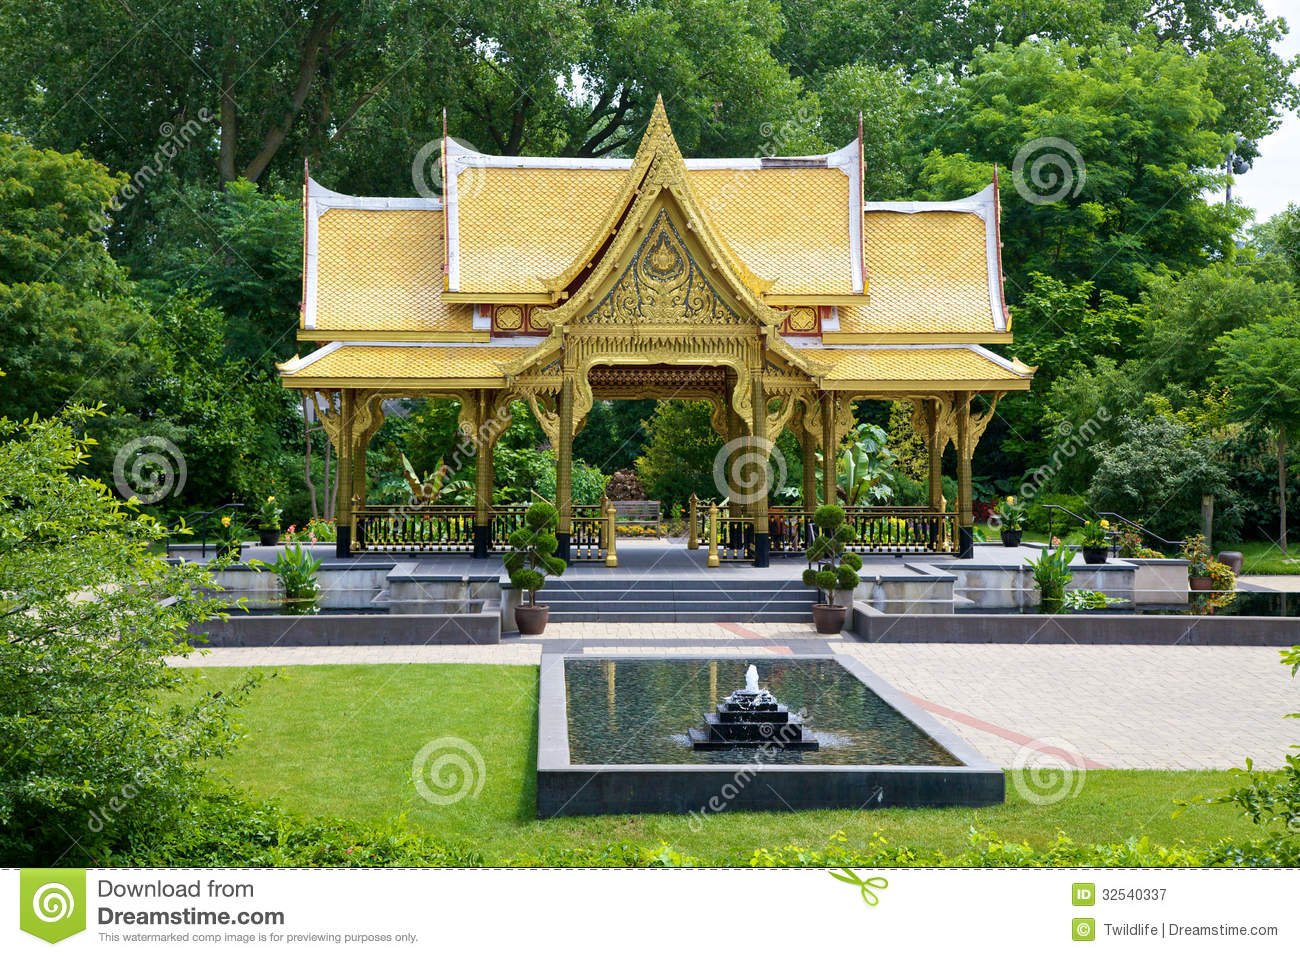 Fall Comes To Garden Of Thai Pavilion >> Thai Pavilion Sala Gardens Stock Image Image Of Building